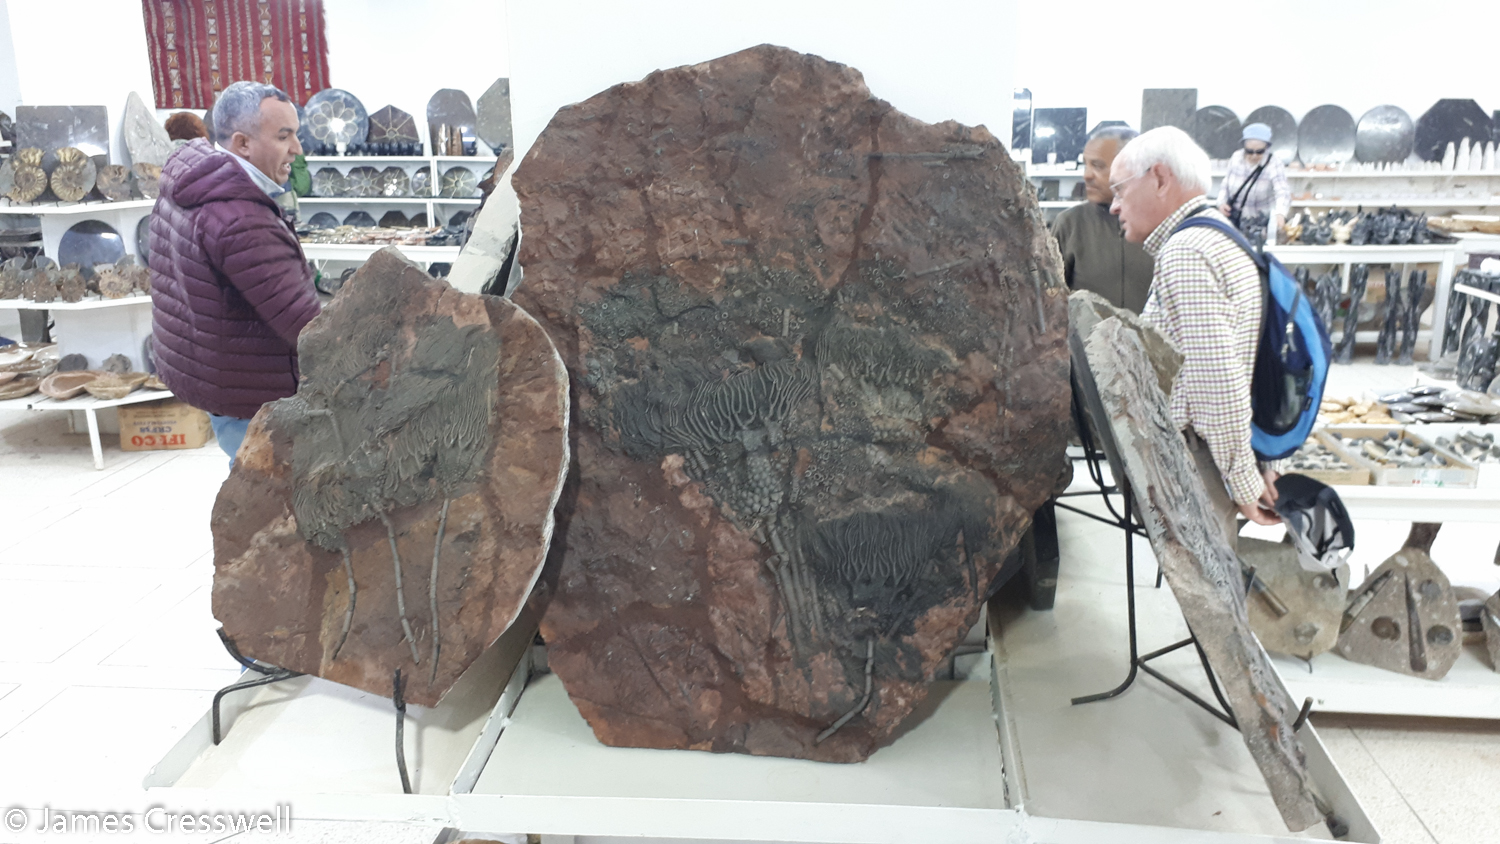 Large fossils for sale in a shop